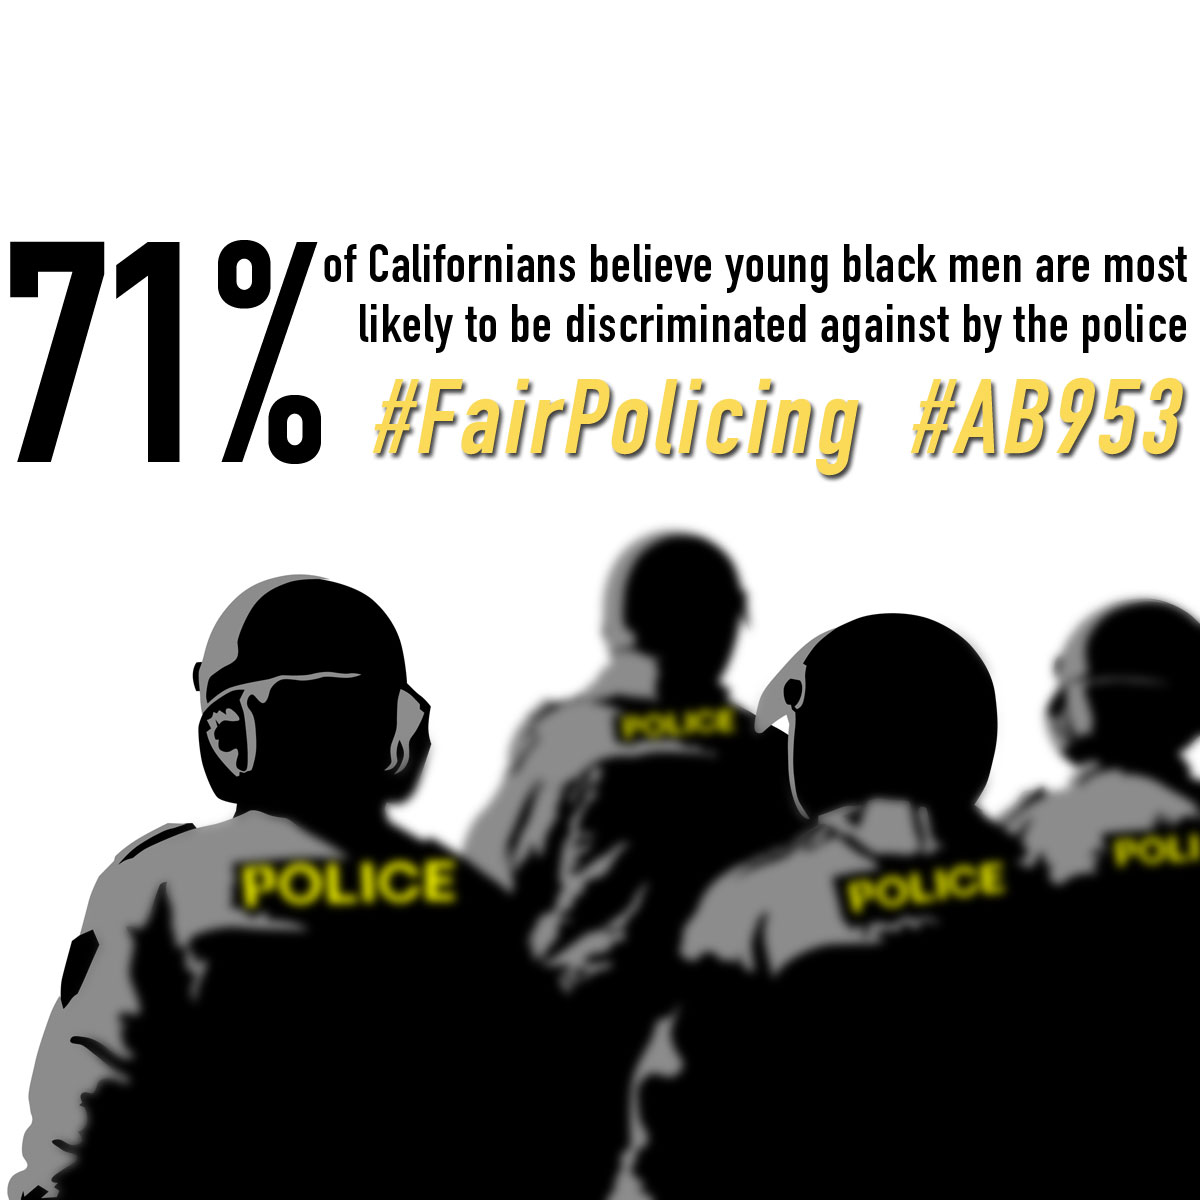 racial profiling is a problem that californians want fixed